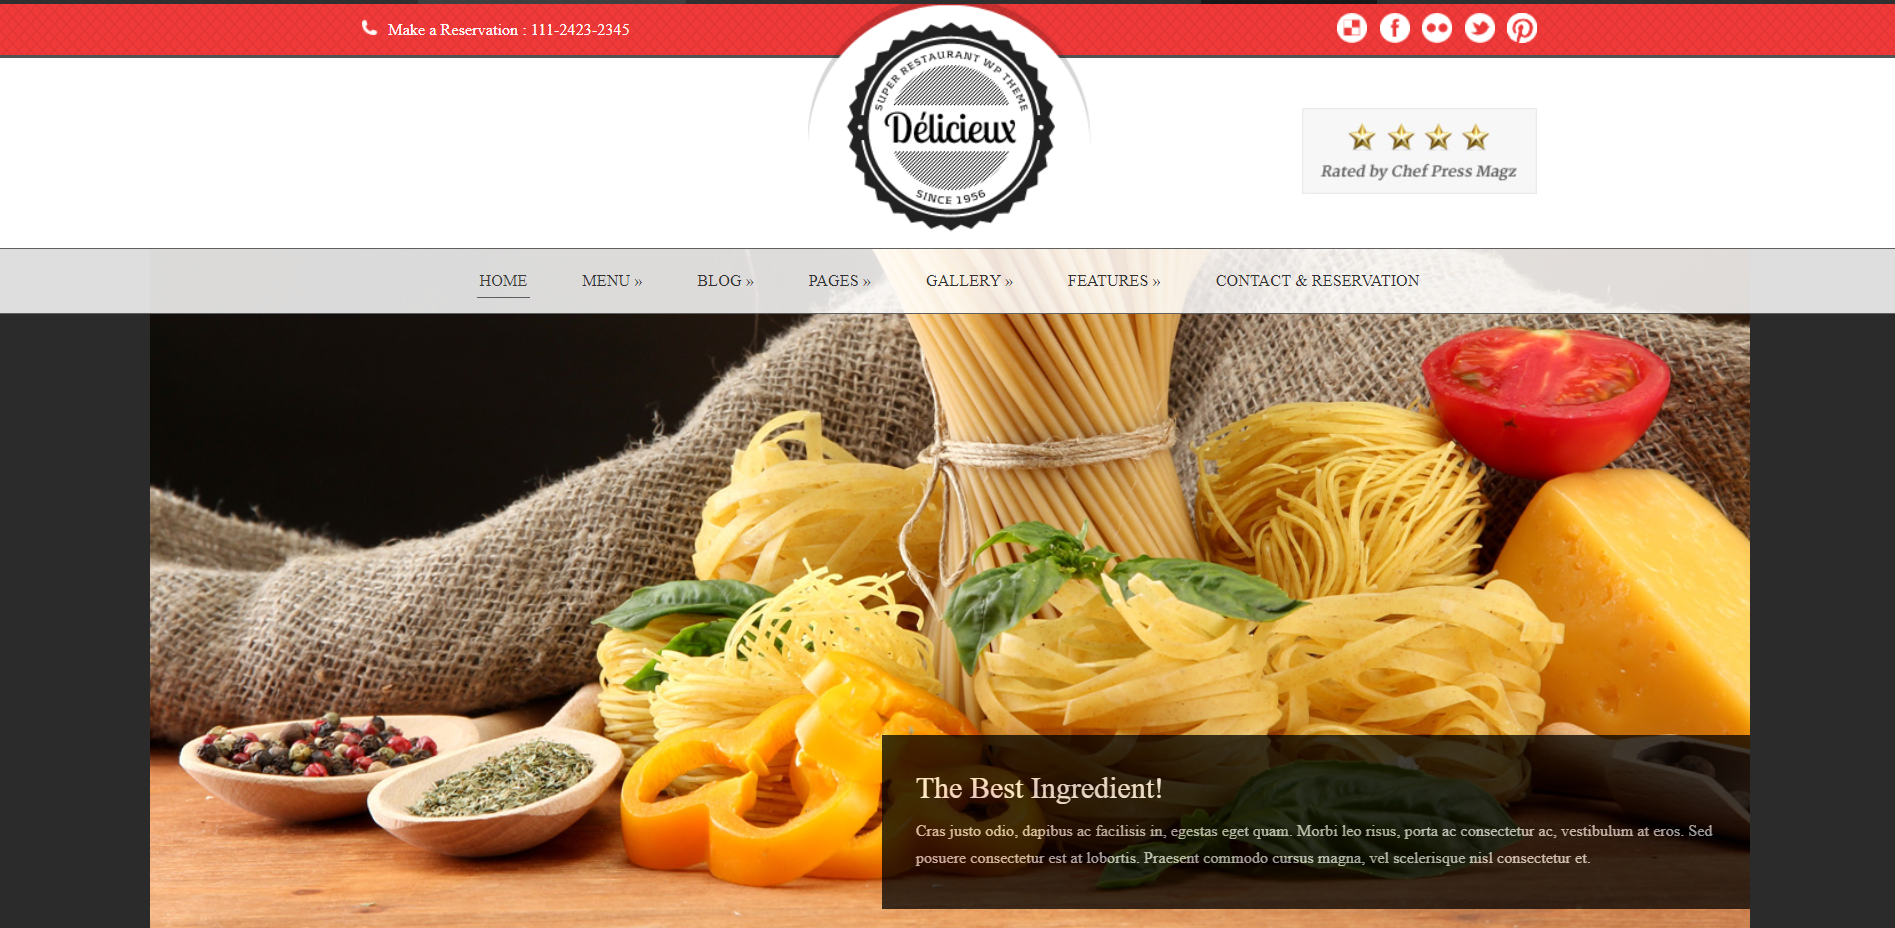 9. Delicieux - Restaurant WordPress Theme